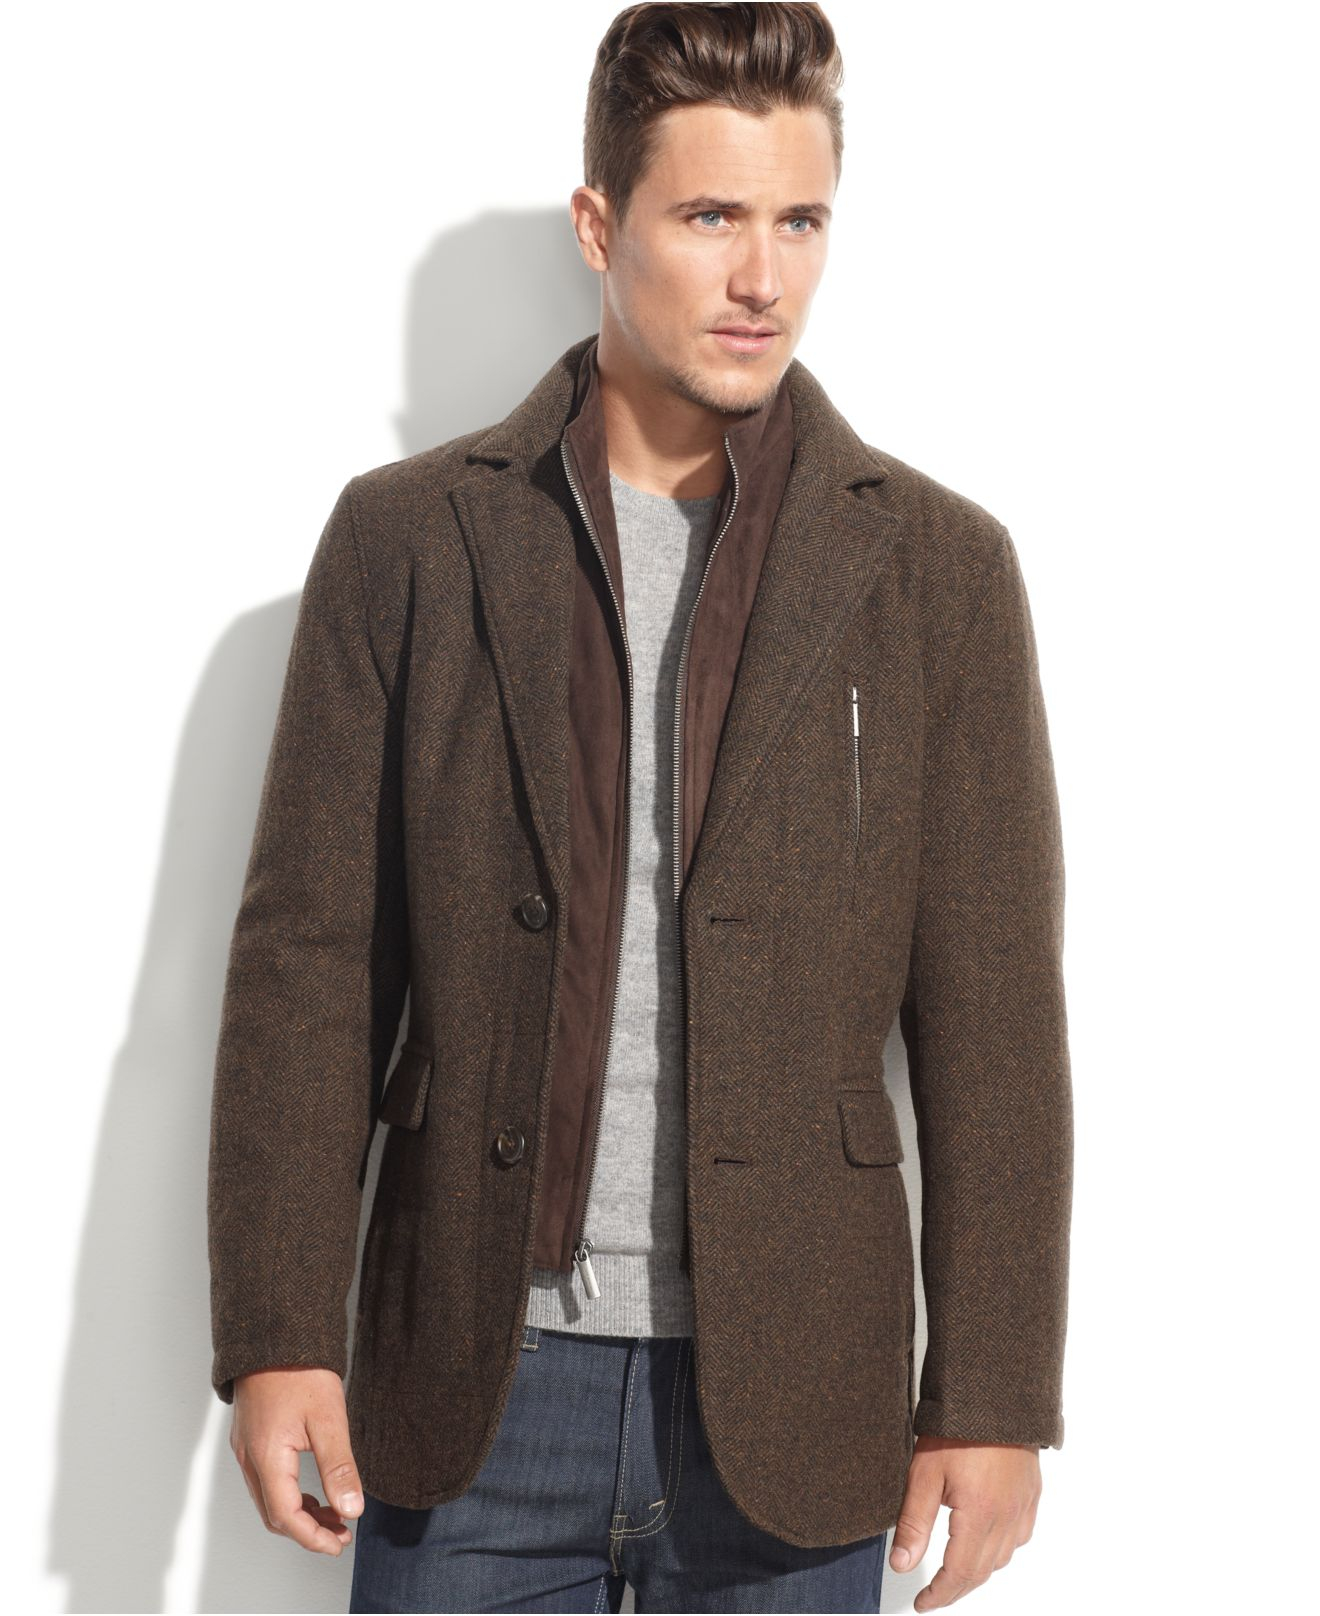 Orvis / Men's Clothing / Jackets & Vests / Sport Coats / Men's Sport Coats: Save $50 when you buy 2 Wrinkle-Free shirts! Wool Travel Blazer Dress up any autumn outfit with our Wool Travel Blazer. Details. Travel takes a toll on your wardrobe. Long flights and packed bags can leave clothing, creased, rumpled, and virtually unwearable.